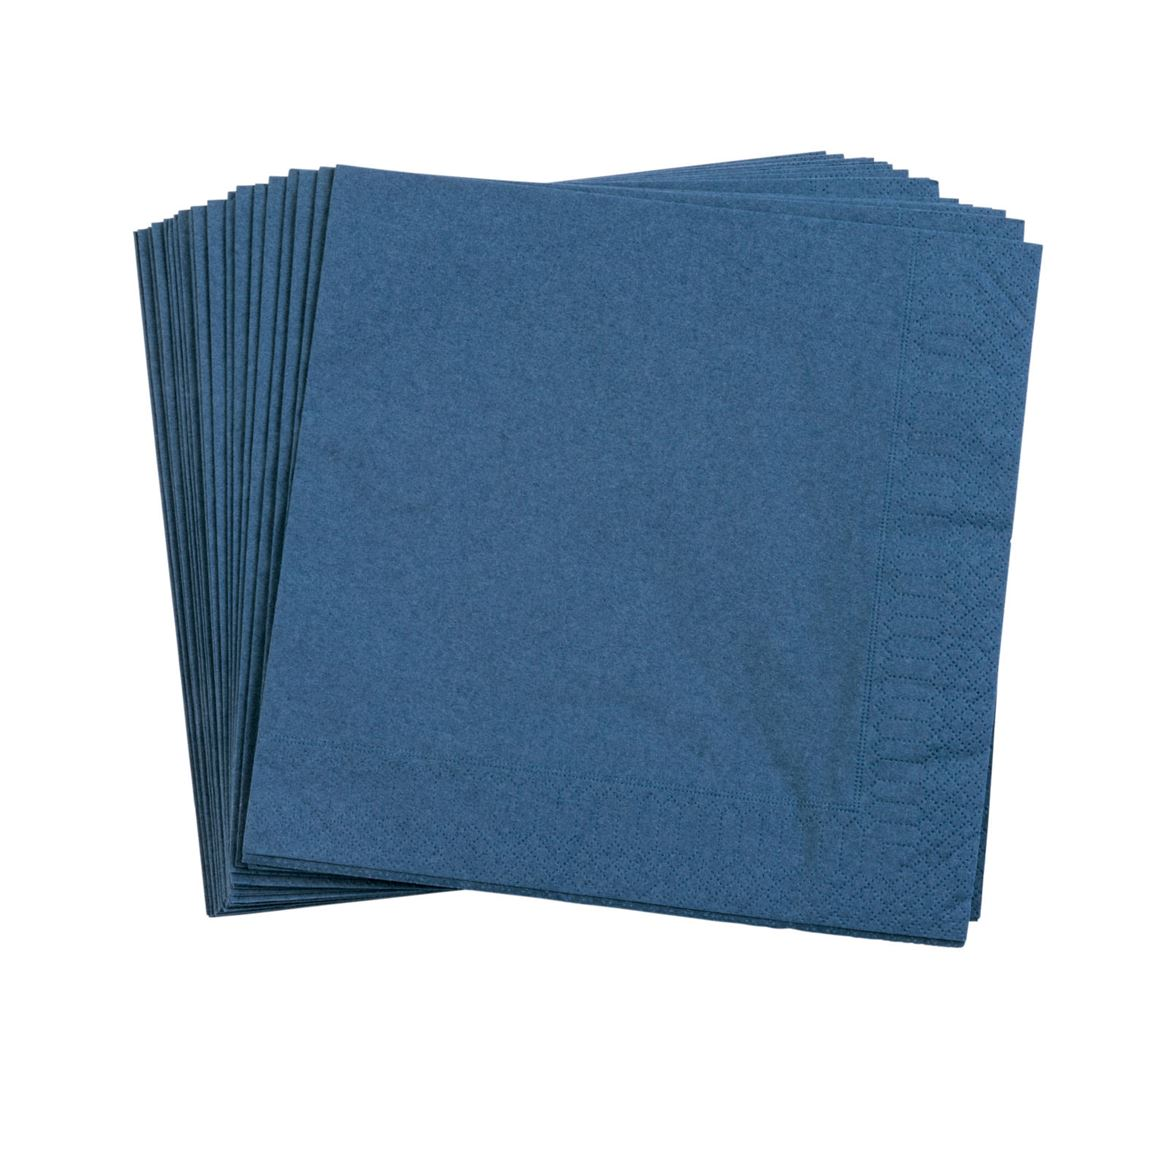 UNI Set de 20 serviettes bleu Larg. 40 x Long. 40 cm_uni-set-de-20-serviettes-bleu-larg--40-x-long--40-cm